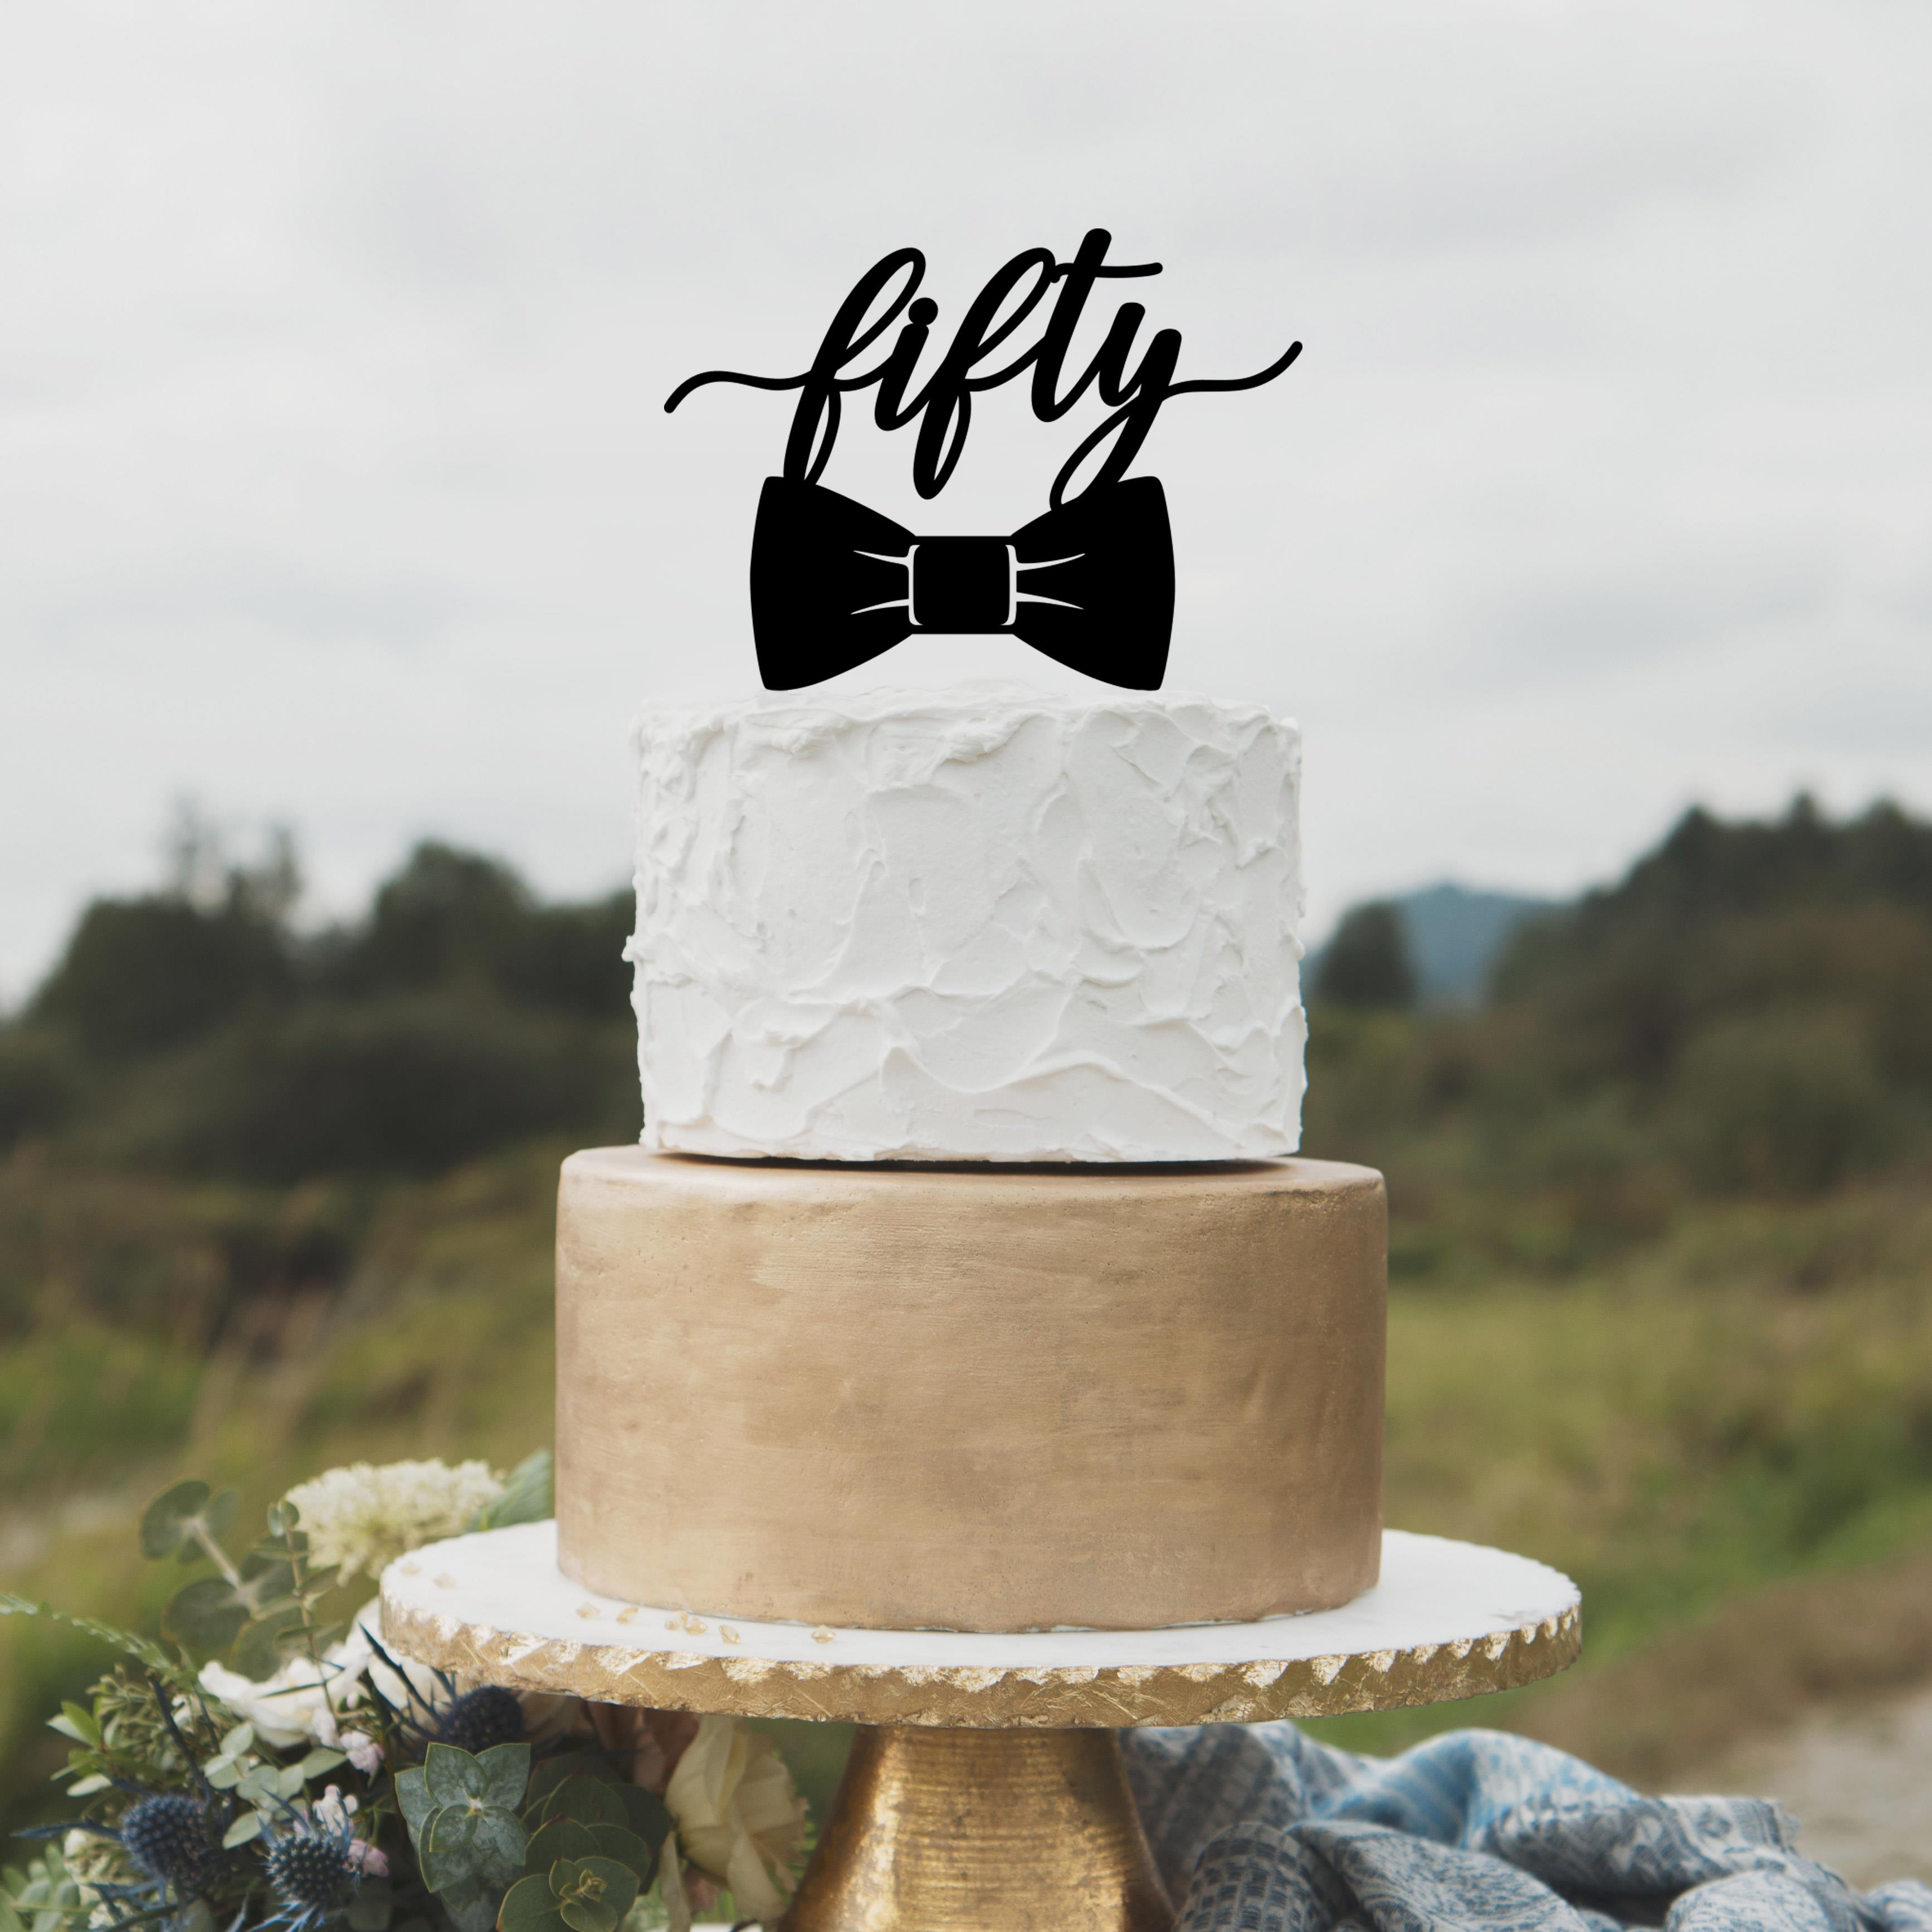 Classic Fiftieth birthday cake topper by Thistle and Lace